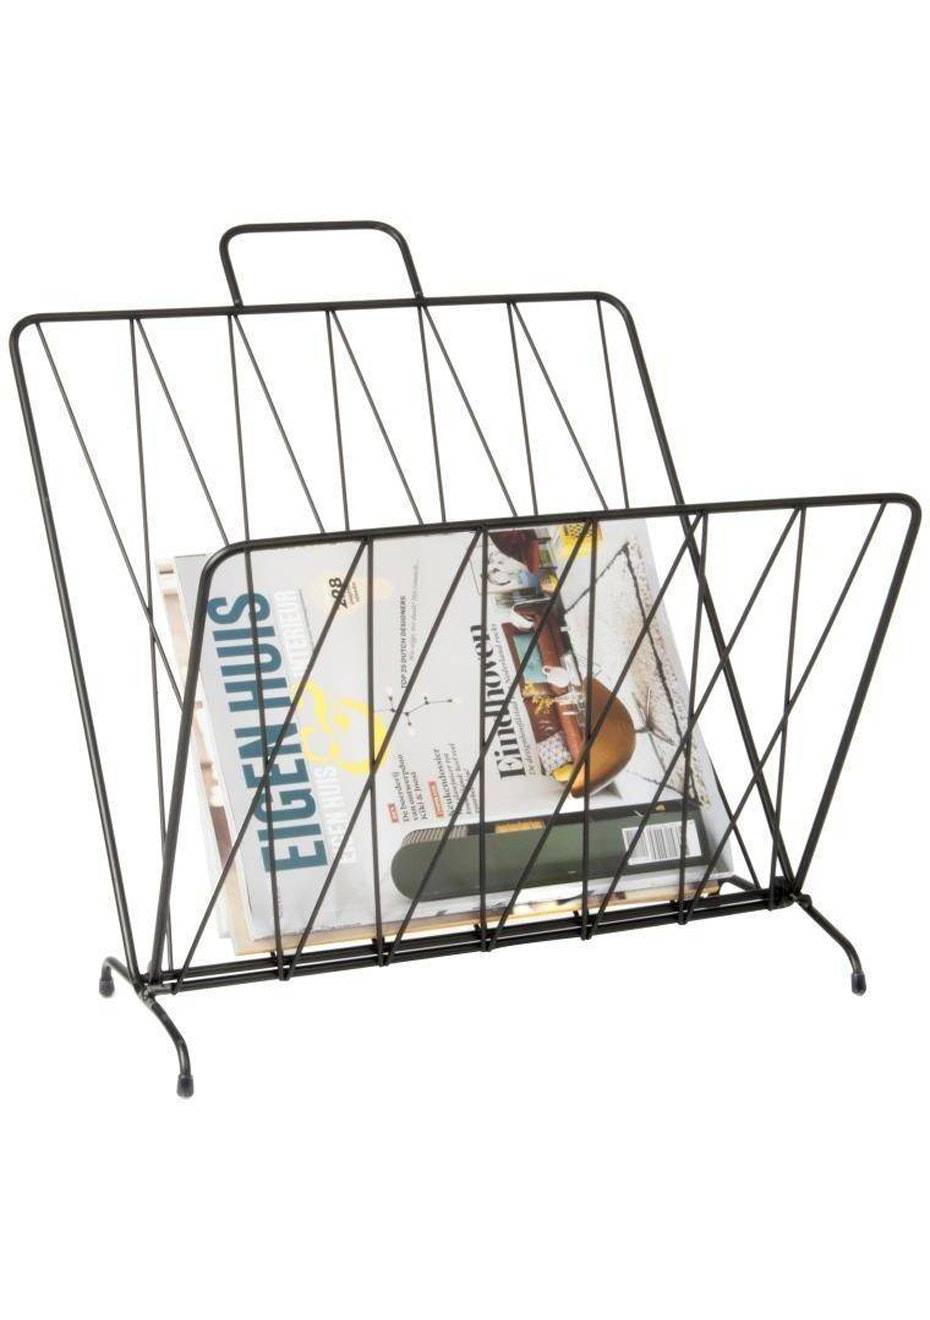 Pt Home - Magazine Rack 'Diamond Raster' - Black